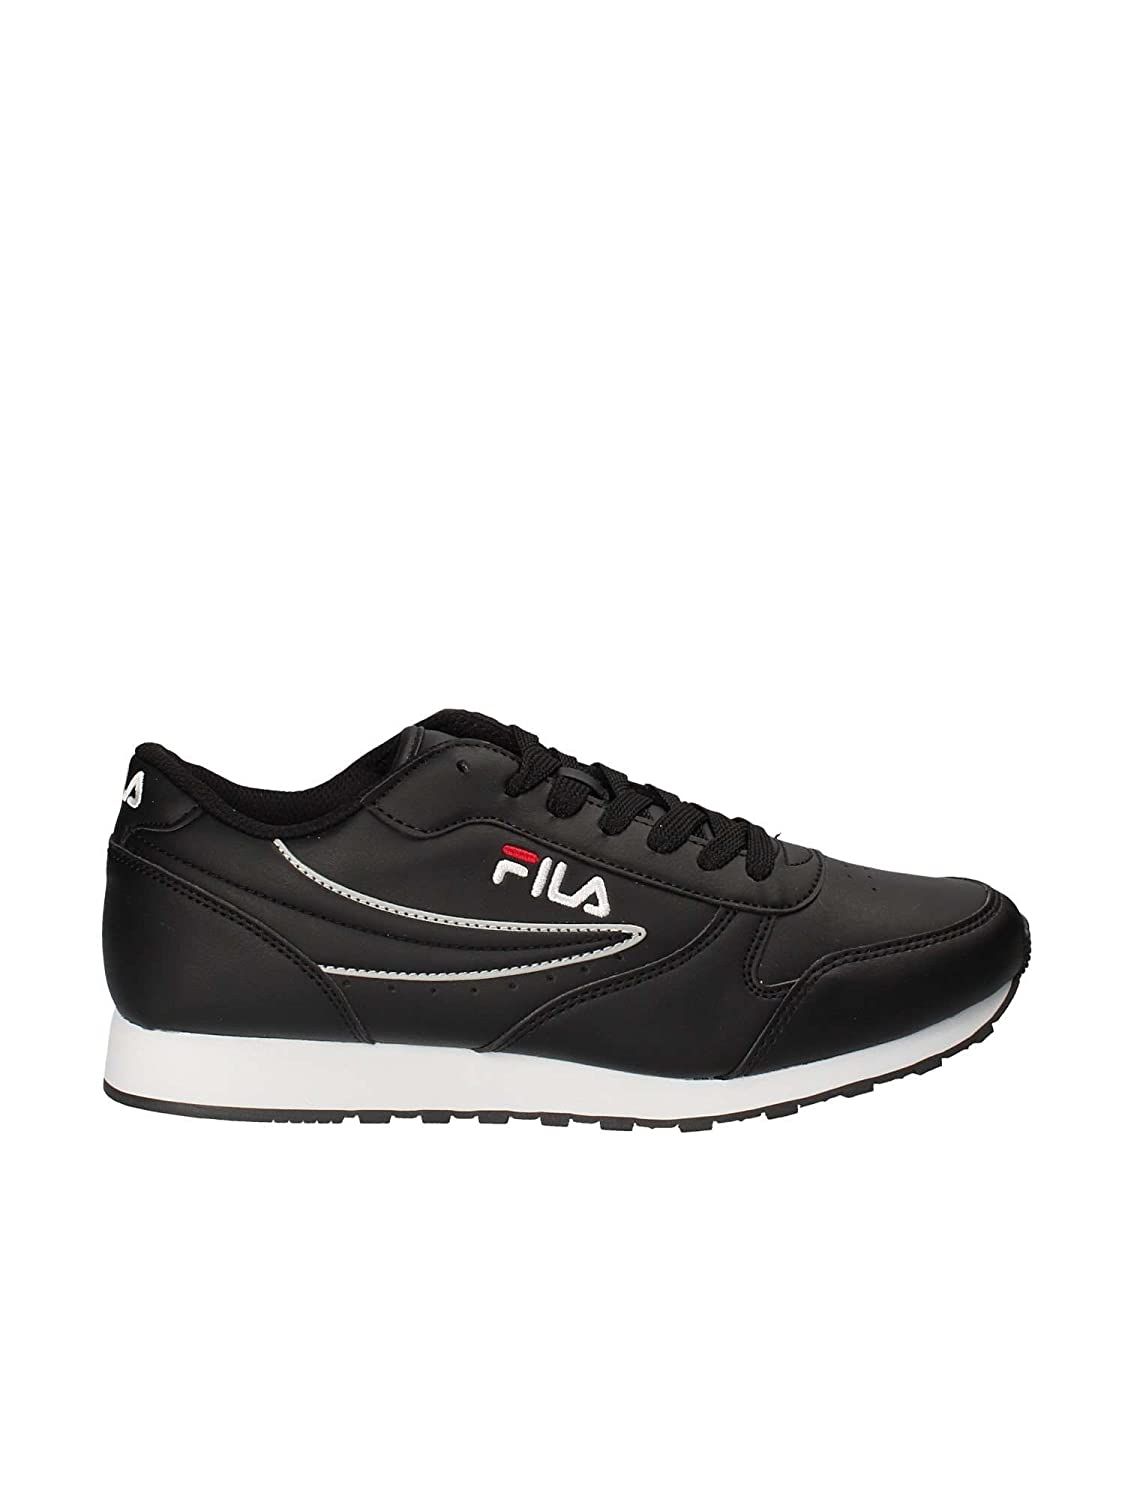 TALLA 44 EU. Scarpe uomo Sneakers FILA Orbit Low in Pelle Blue 1010263-29Y